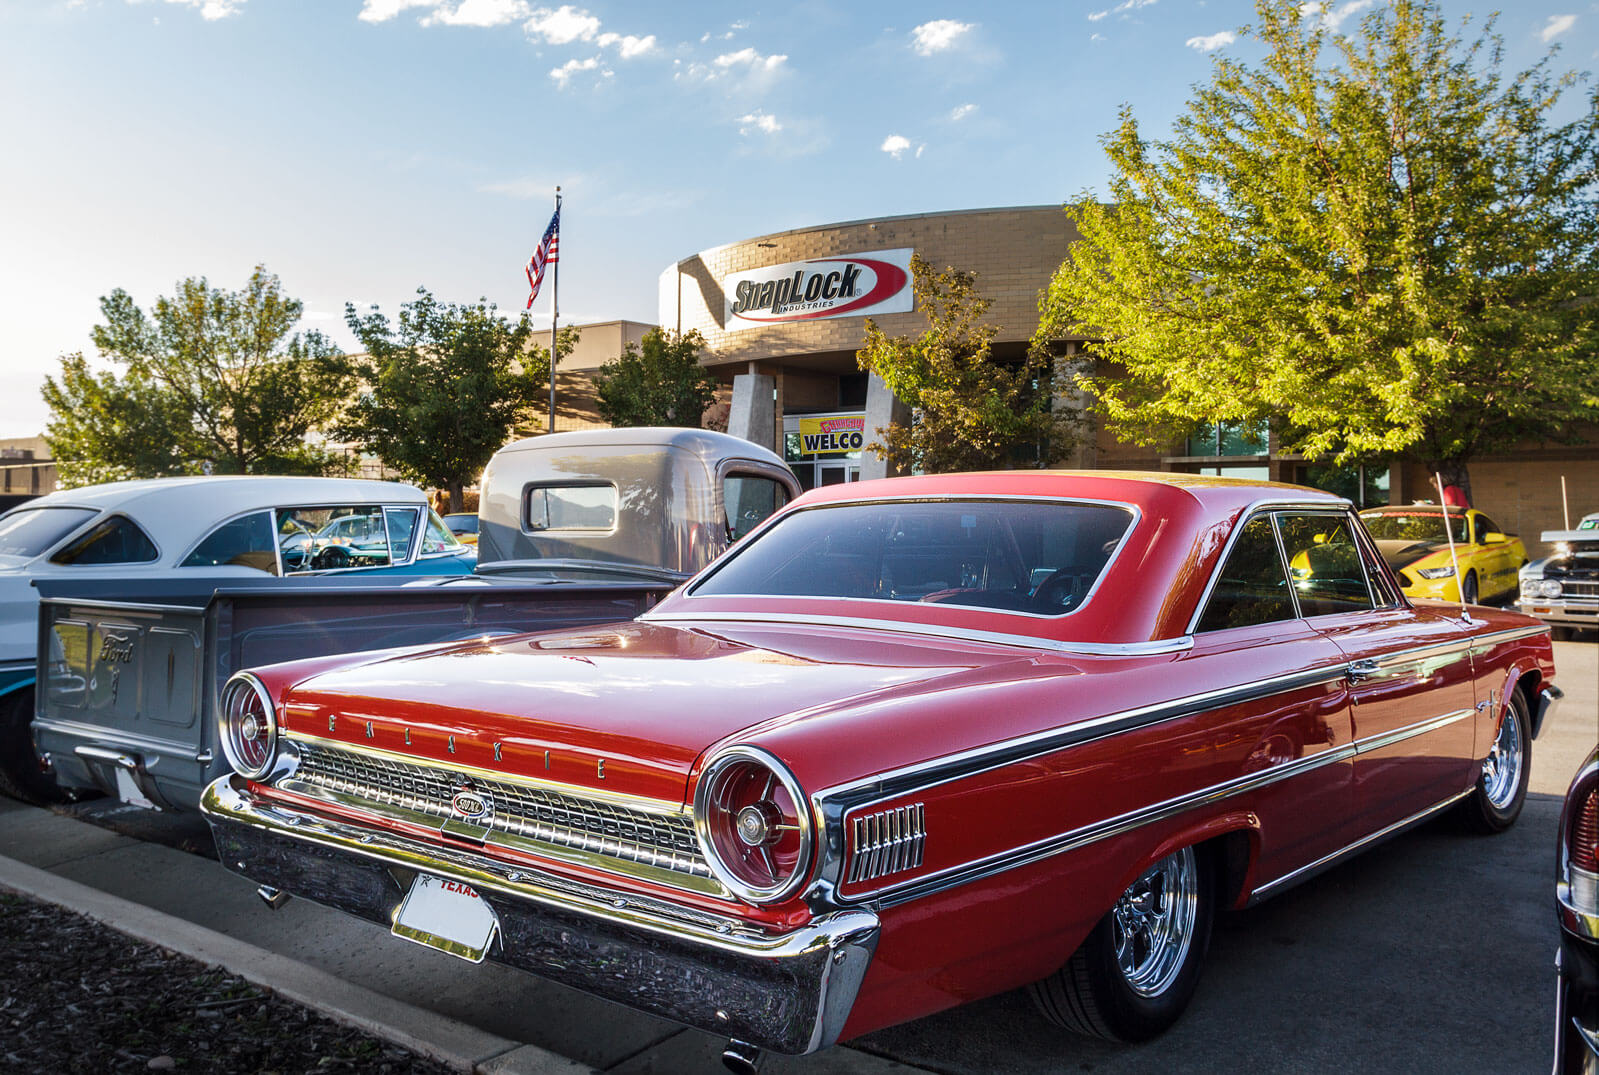 Goodguys Road Tour Arrives at RaceDeck